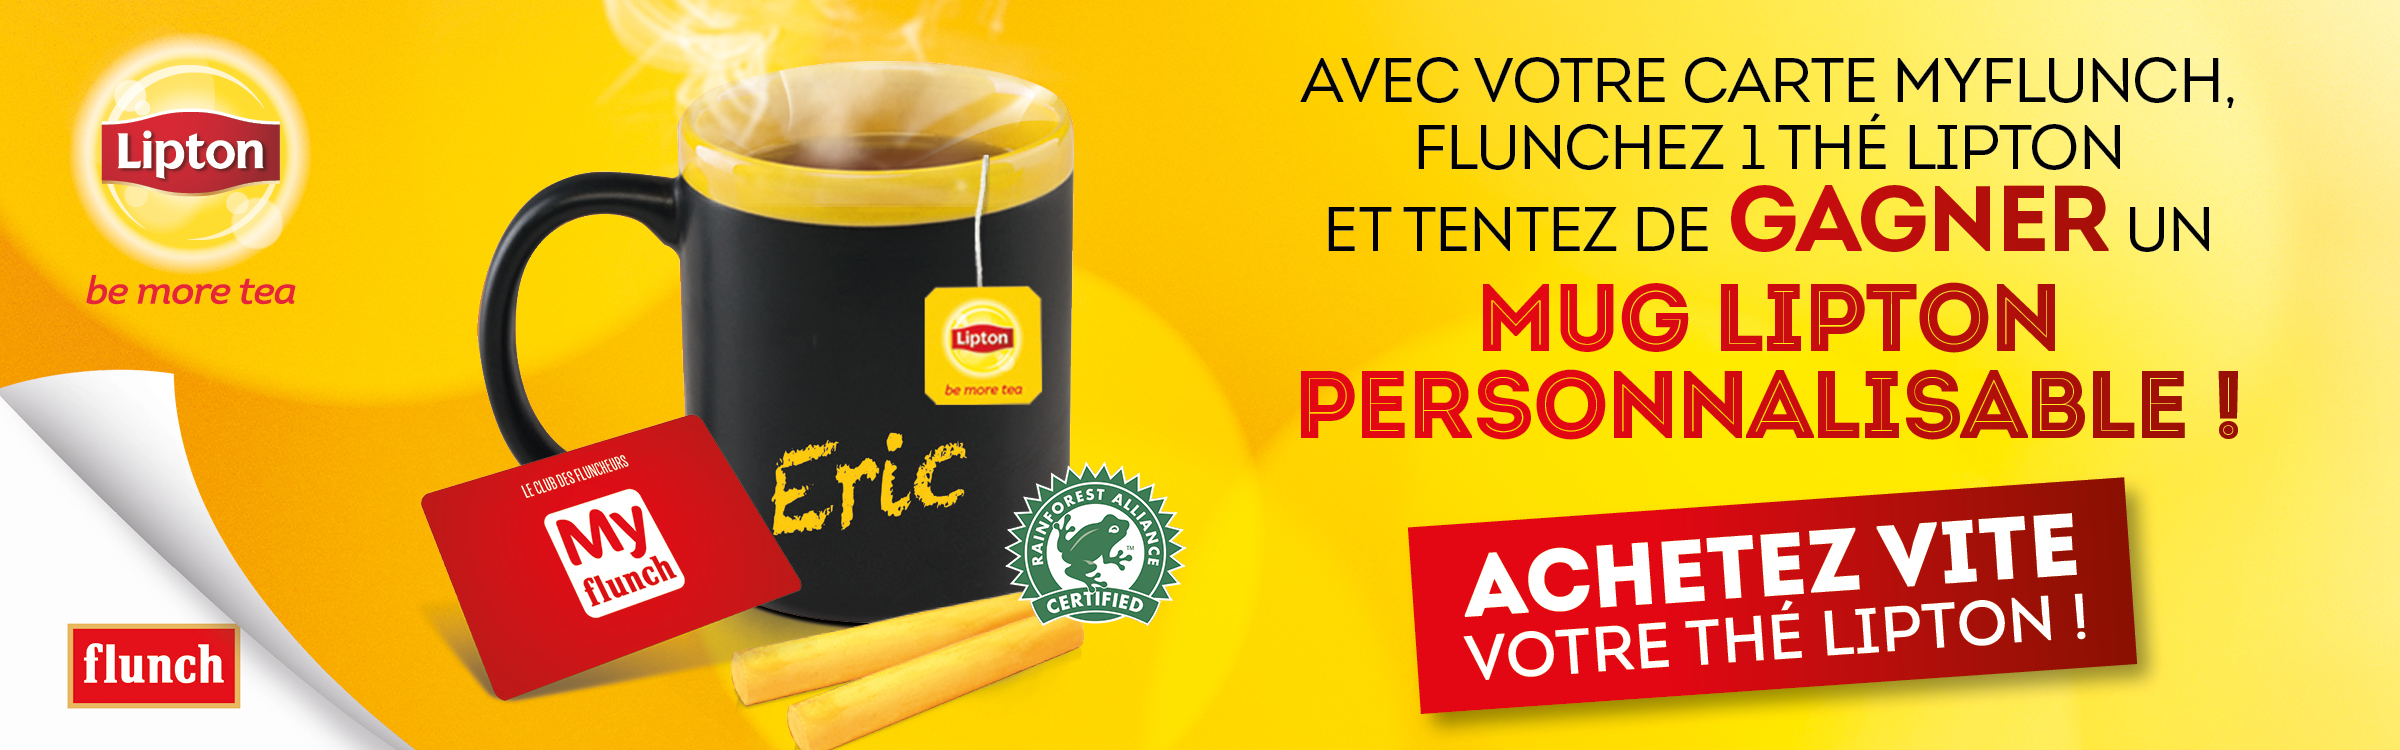 Lipton action Mug_Flunch_2400x750px